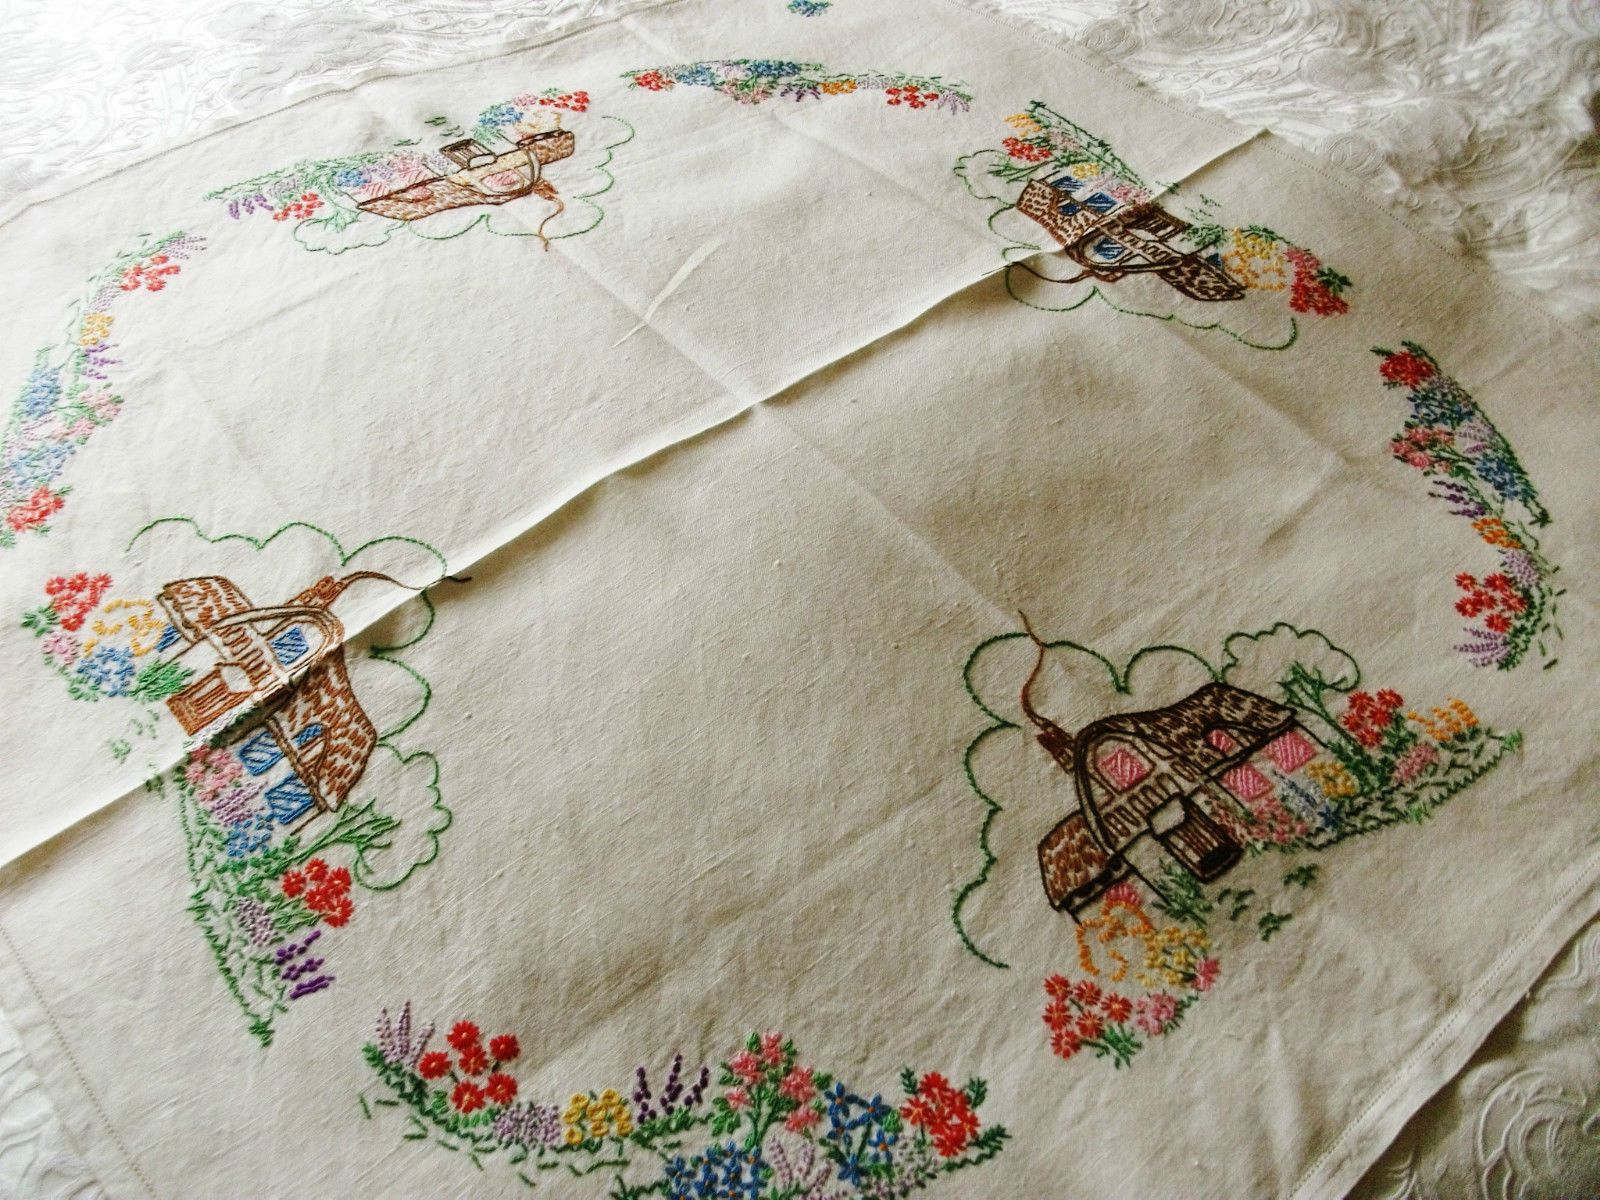 Outline embroidery designs for tablecloth - Vintage Hand Embroidered Linen 33 X 33 Thatched Cottages Tablecloth Ebay